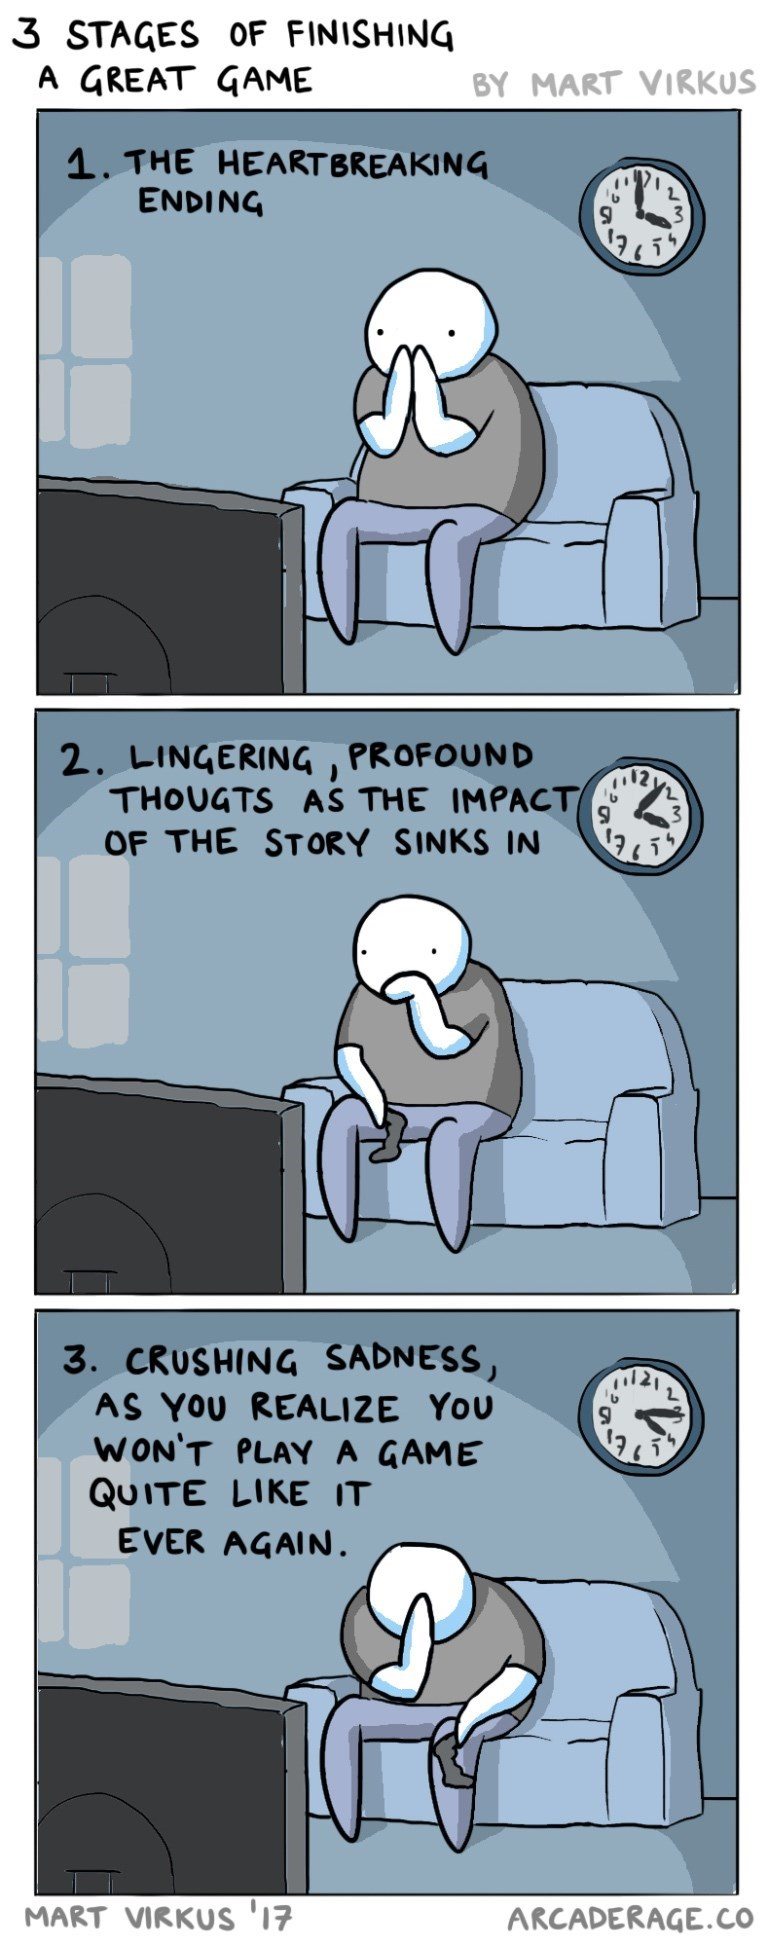 Cartoon - 3 STAGES OF FINISHING A GREAT GAME BY MART VIRKUS 1. THE HEART BREAKING ENDING 2. LINGERING THOUGTS AS THE IMPACT OF THE STORY SINKS IN PROFOUND 12 , ,ל 3. CRUSHING SADNESS AS YOU REALIZE YOU WON'T PLAY A GAME QUITE LIKE IT EVER AGAIN. MART VIRKUS '17 ARCADERAGE.CO